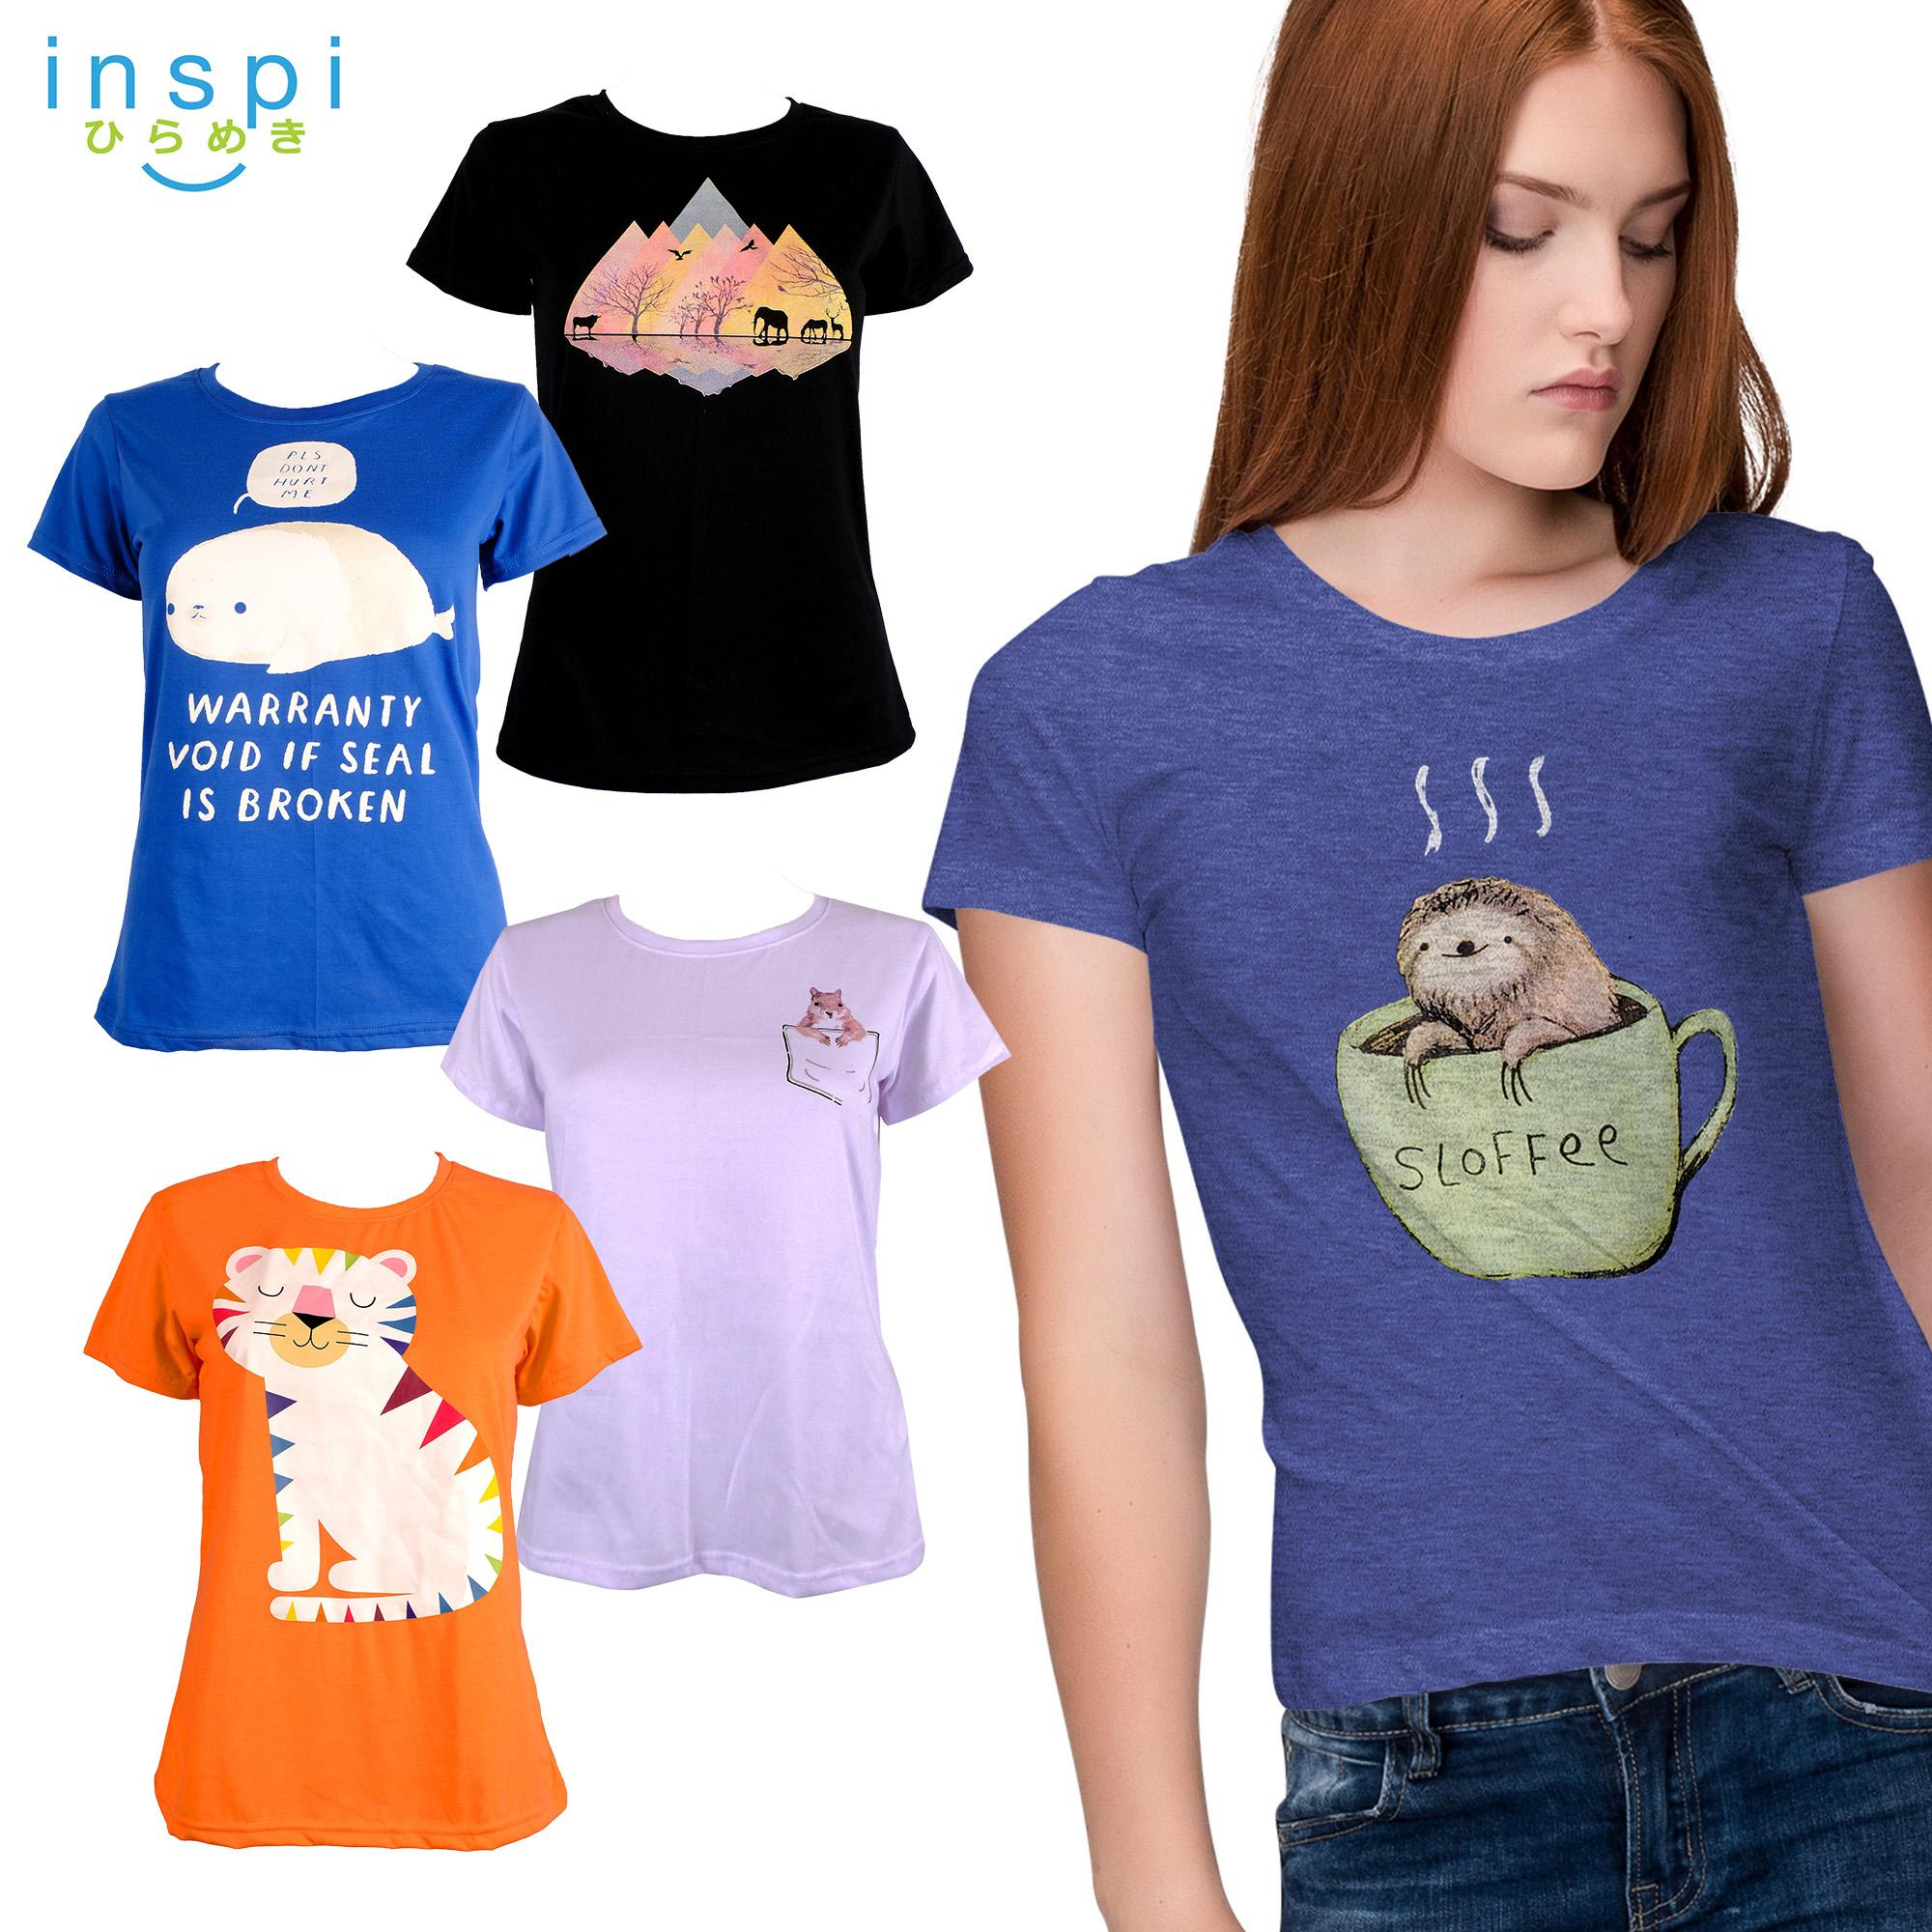 6f7aa0a585c INSPI Tees Ladies Pet Collection tshirt printed graphic tee Ladies t shirt  shirts women tshirts for